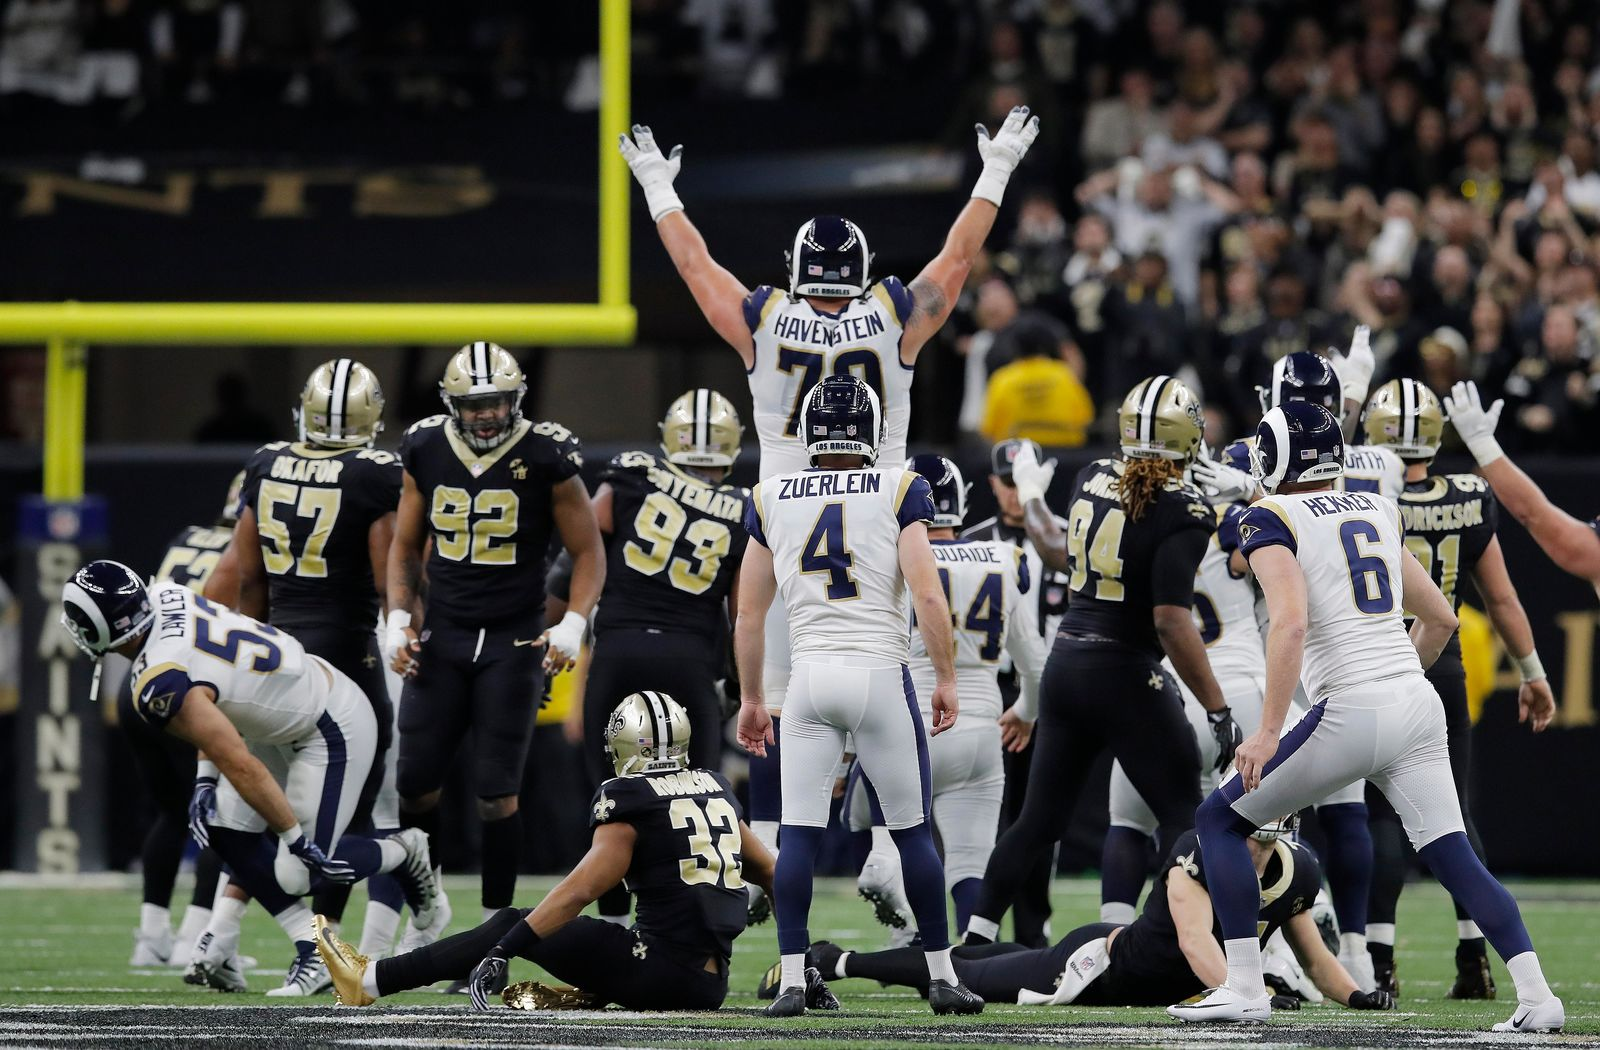 FILE - Los Angeles Rams kicker Greg Zuerlein reacts after his game-winning field goal in overtime of the NFL football NFC championship game against the New Orleans Saints, Sunday, Jan. 20, 2019, in New Orleans. The Rams won 26-23. (AP Photo/Carolyn Kaster)